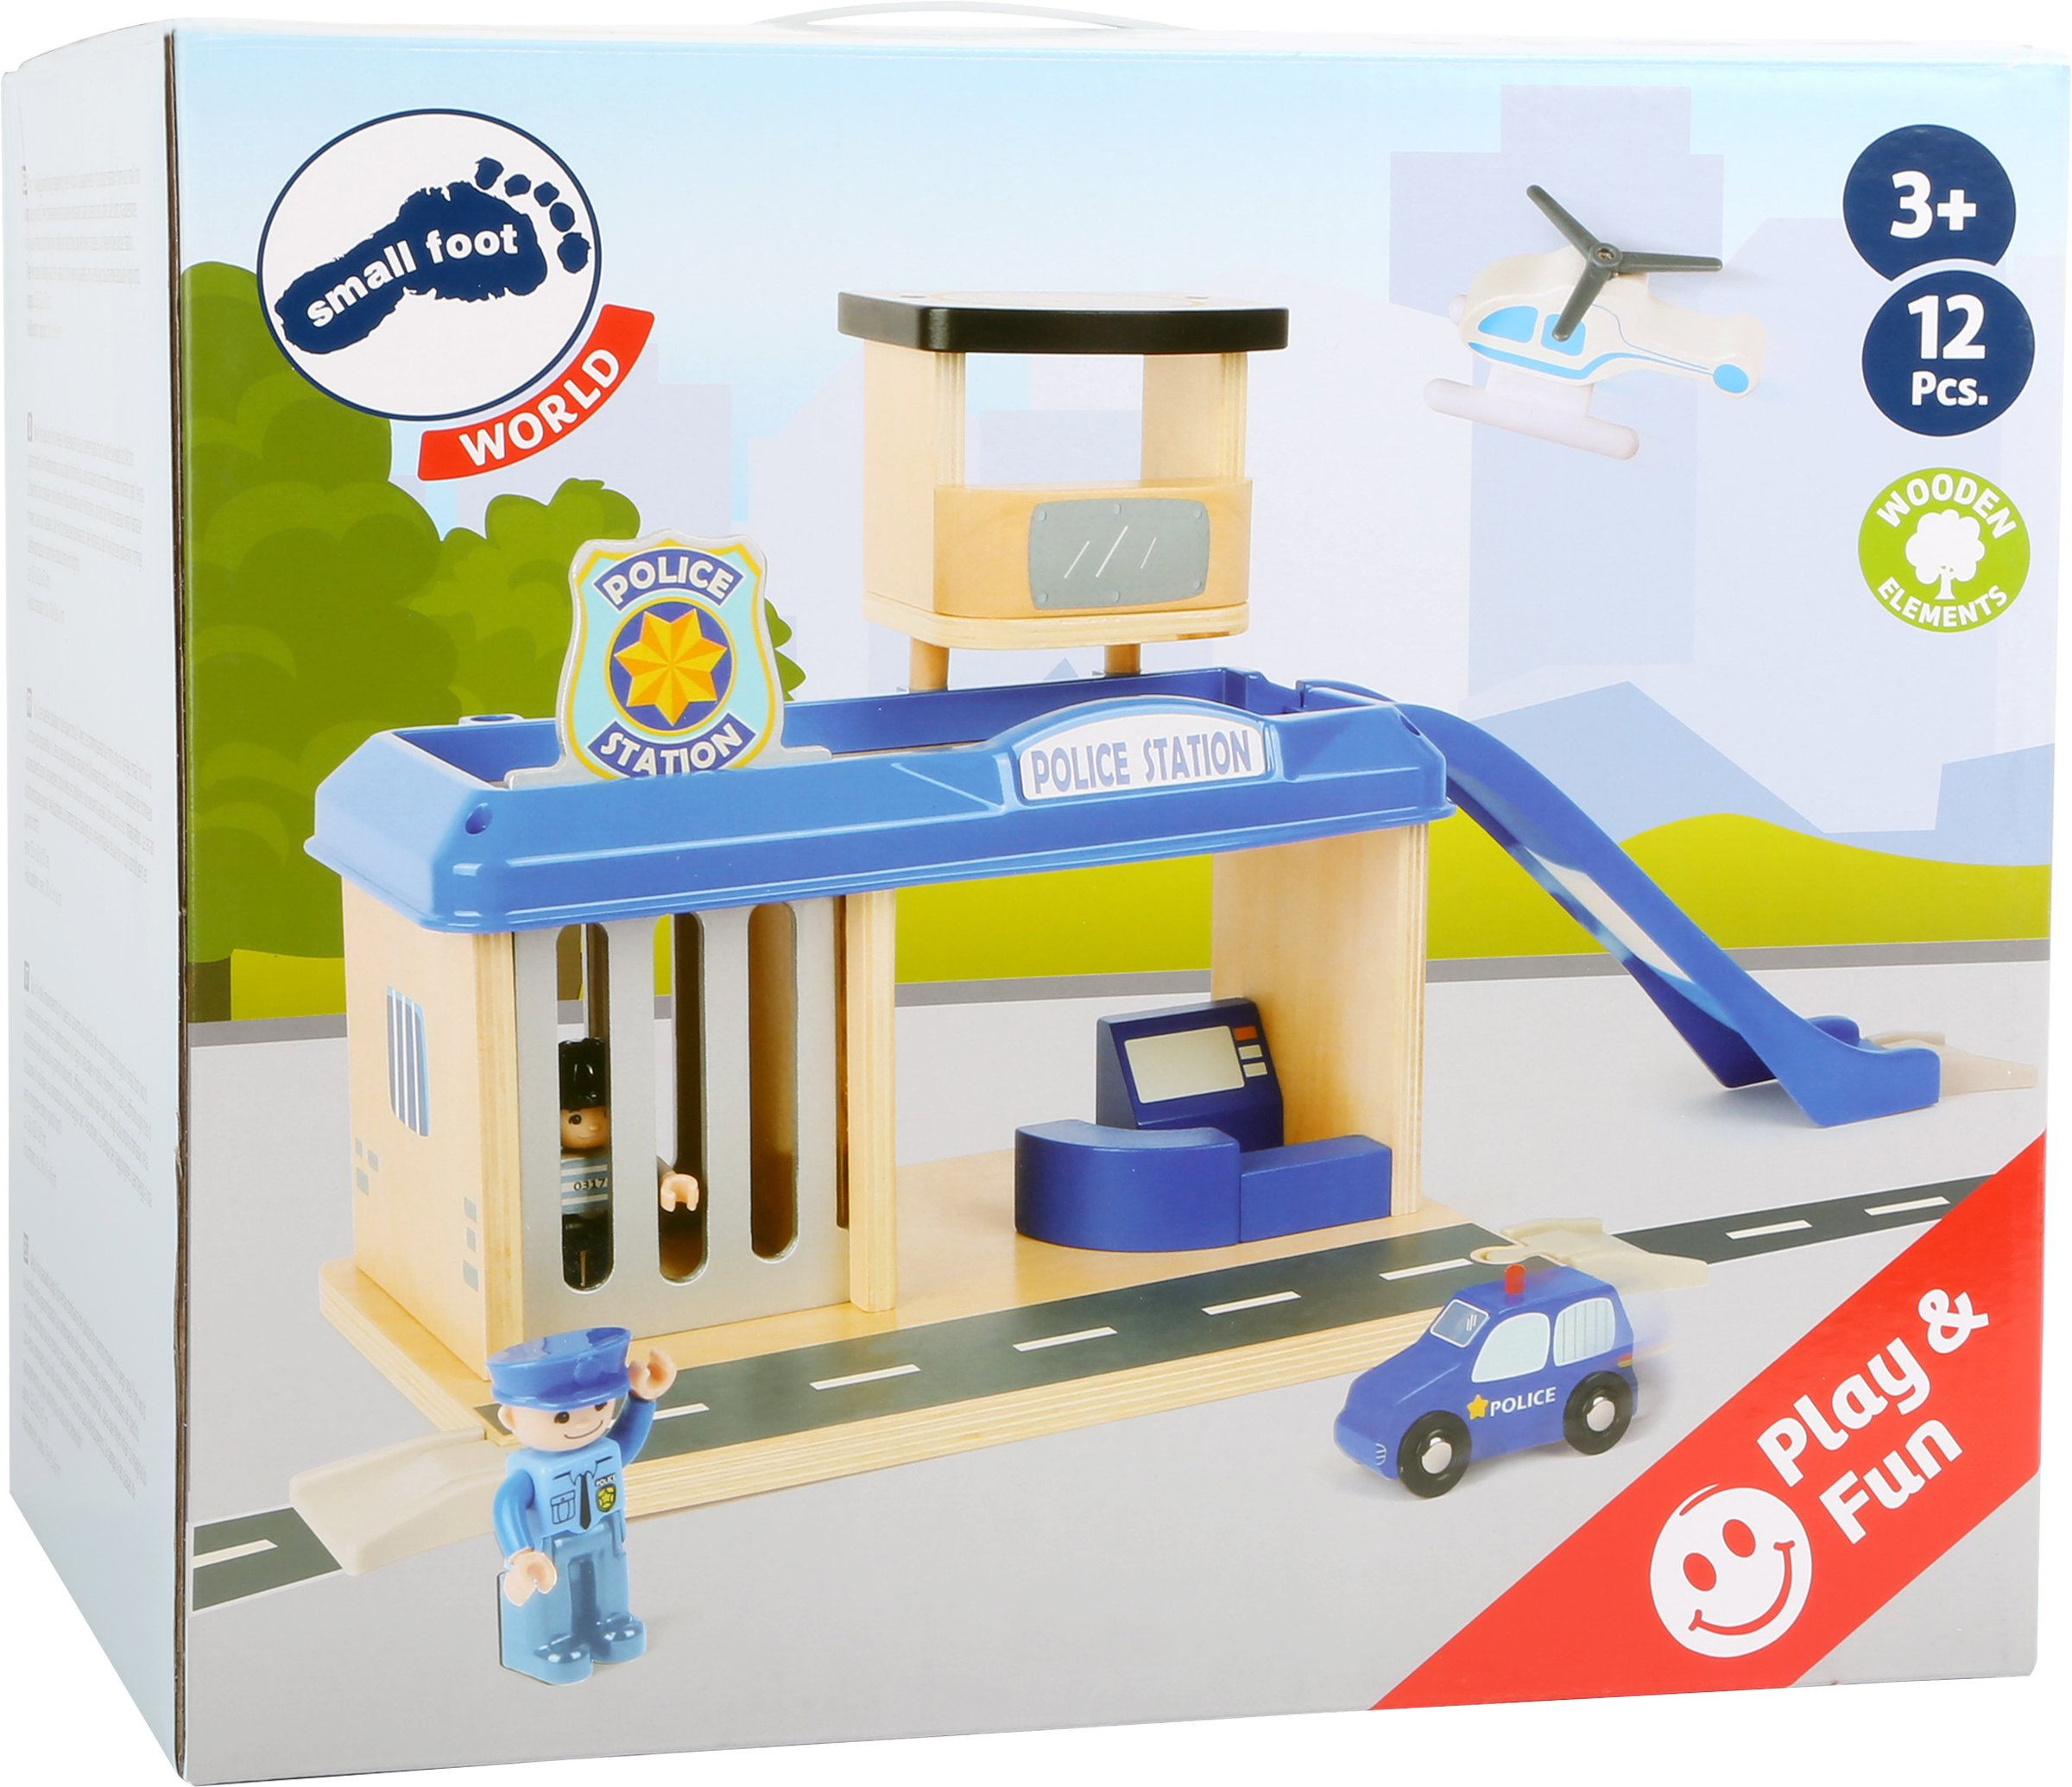 small foot 10797 Police station with accessories, including a policeman, robber, helicopter and car, from 3 years Small Foot World An impressive police station in a strong, vivid police blue Many extras like a policeman, a robber, a car and a helicopter Compatible with all common railway brands 7